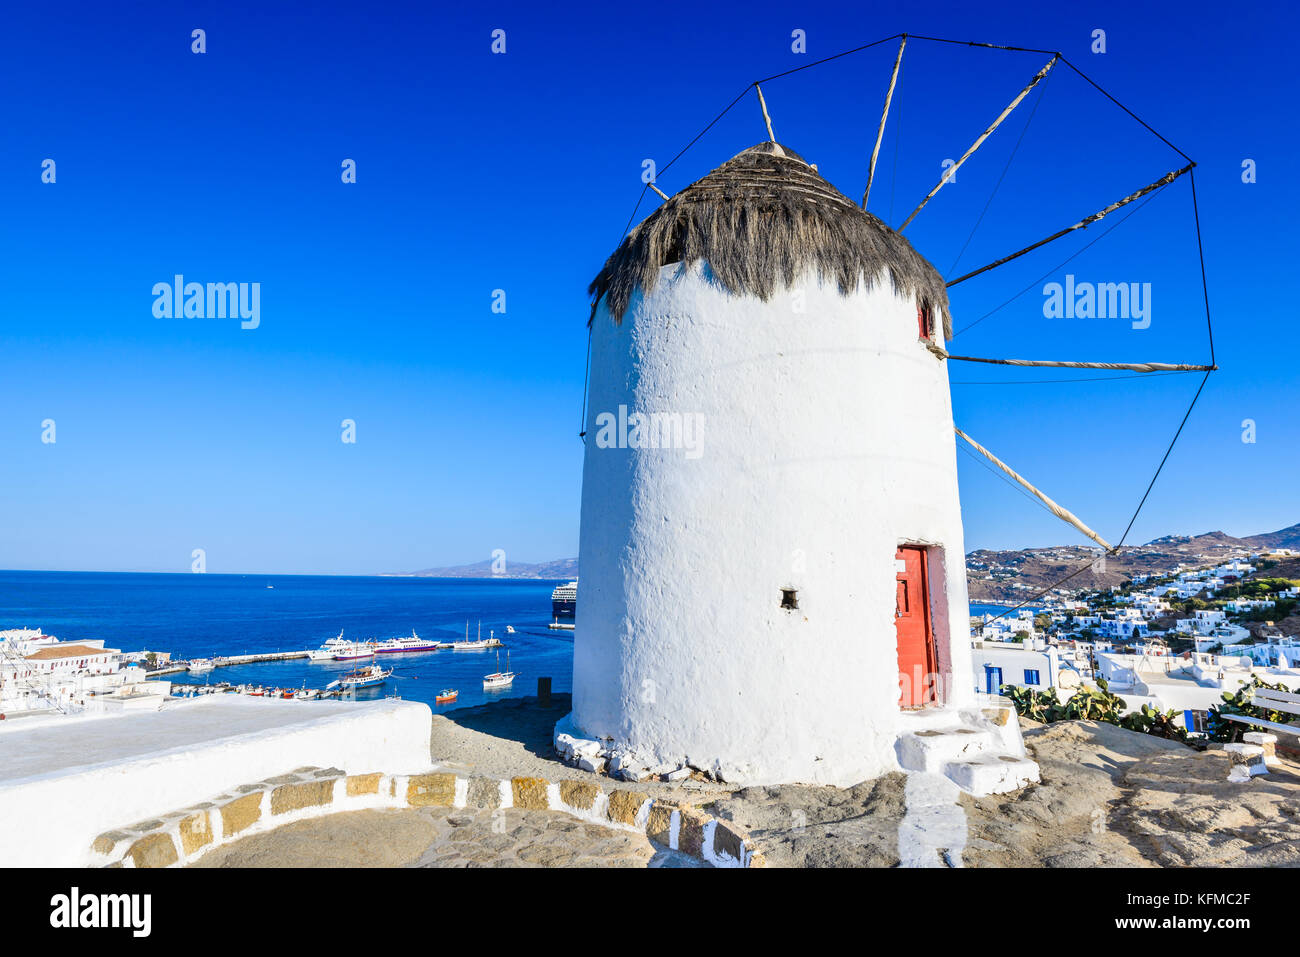 Mykonos, Greece. Windmills are iconic feature of the Greek island of the Mykonos, Cyclades Islands. - Stock Image